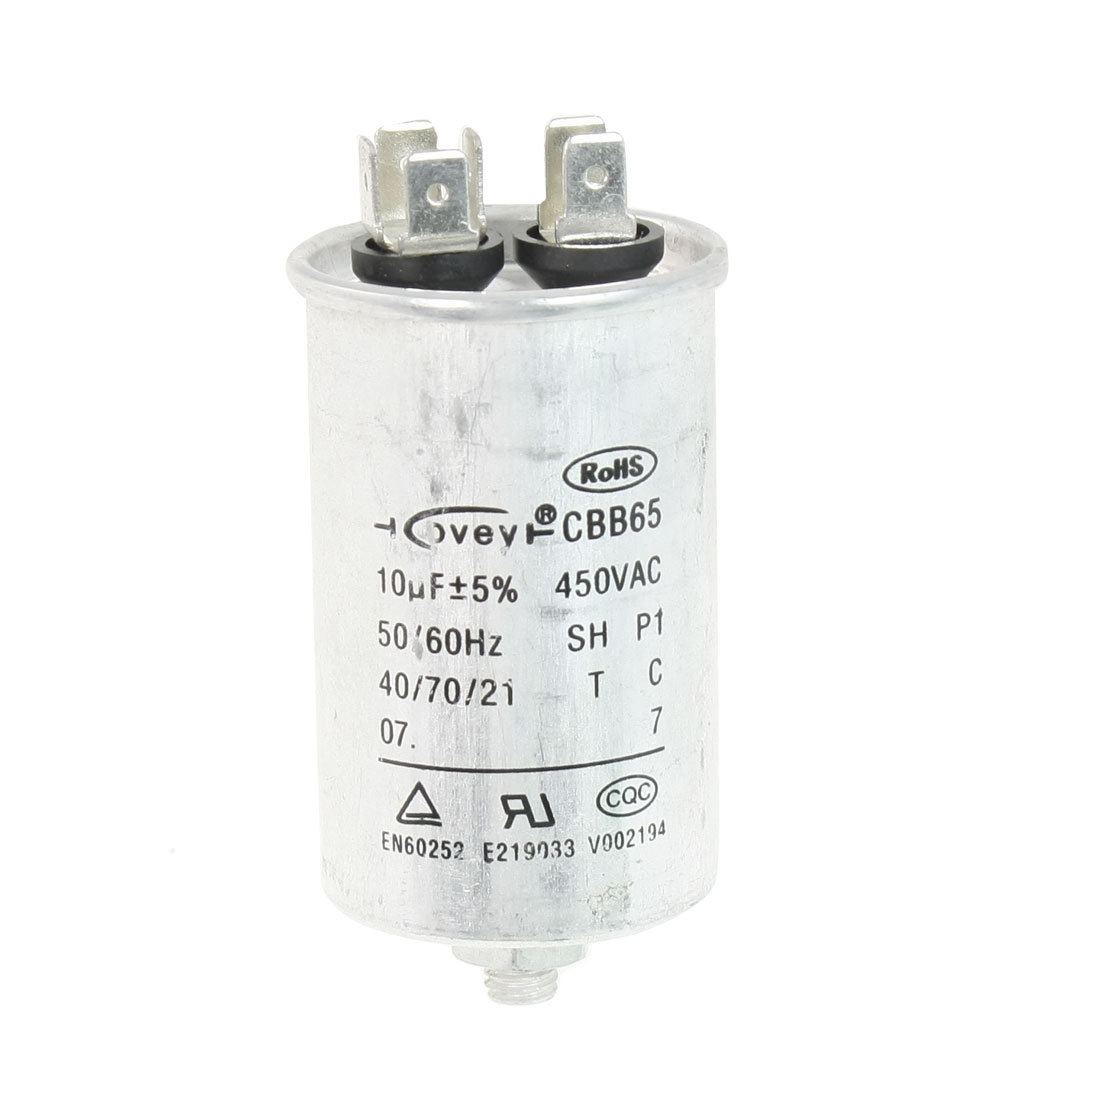 Air Conditioner AC 450V 10uF Cylindrical Motor Capacitor CBB65